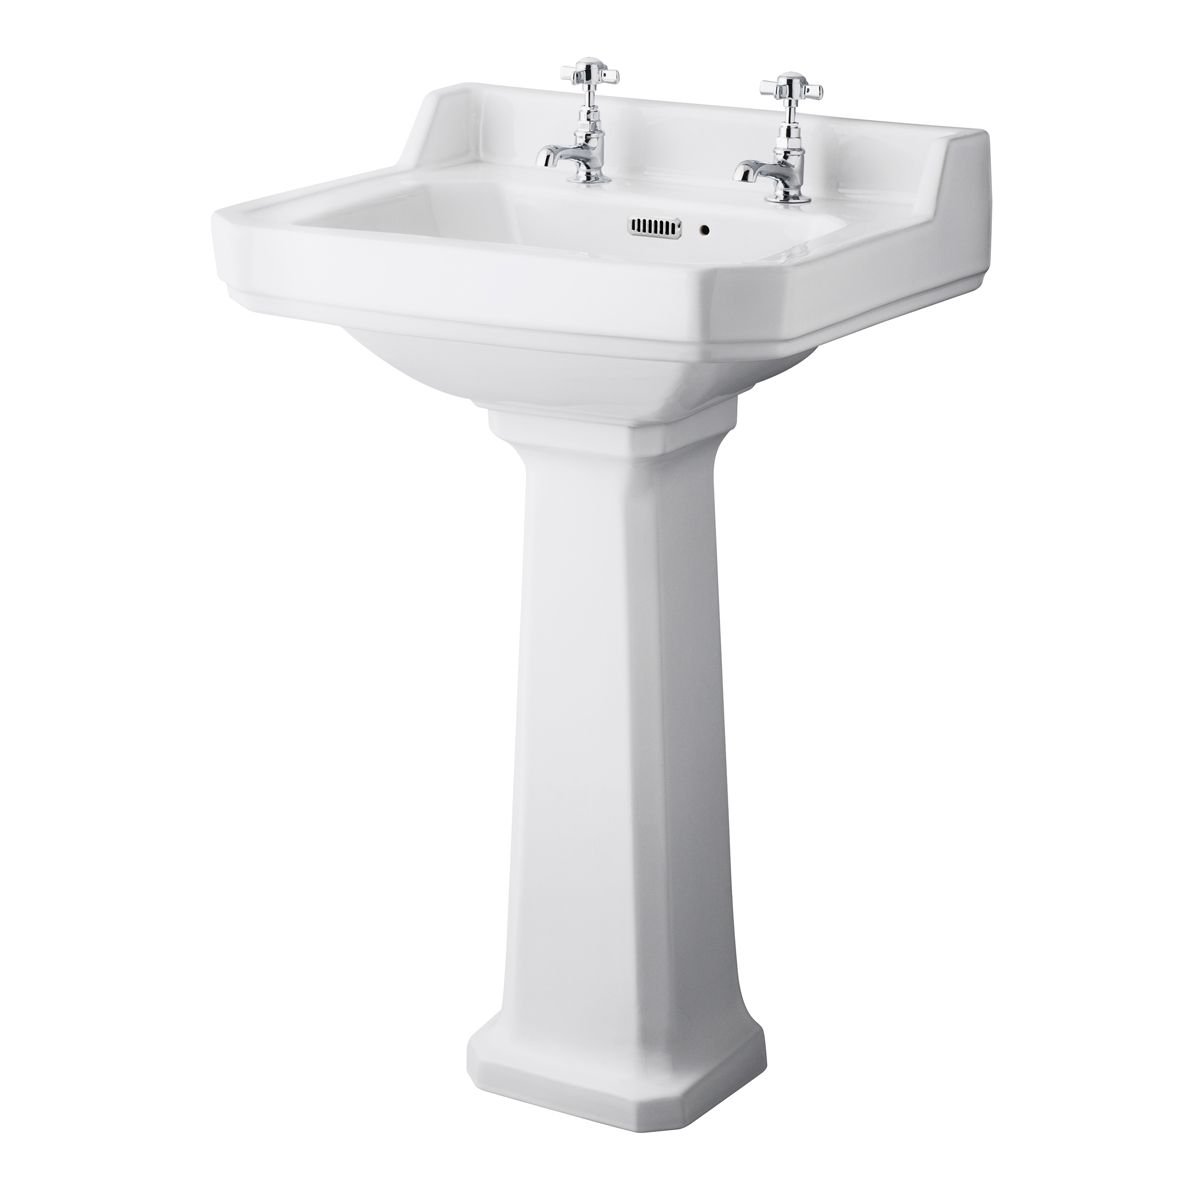 Hudson Reed 2 Tap Hole Basin with Full Pedestal